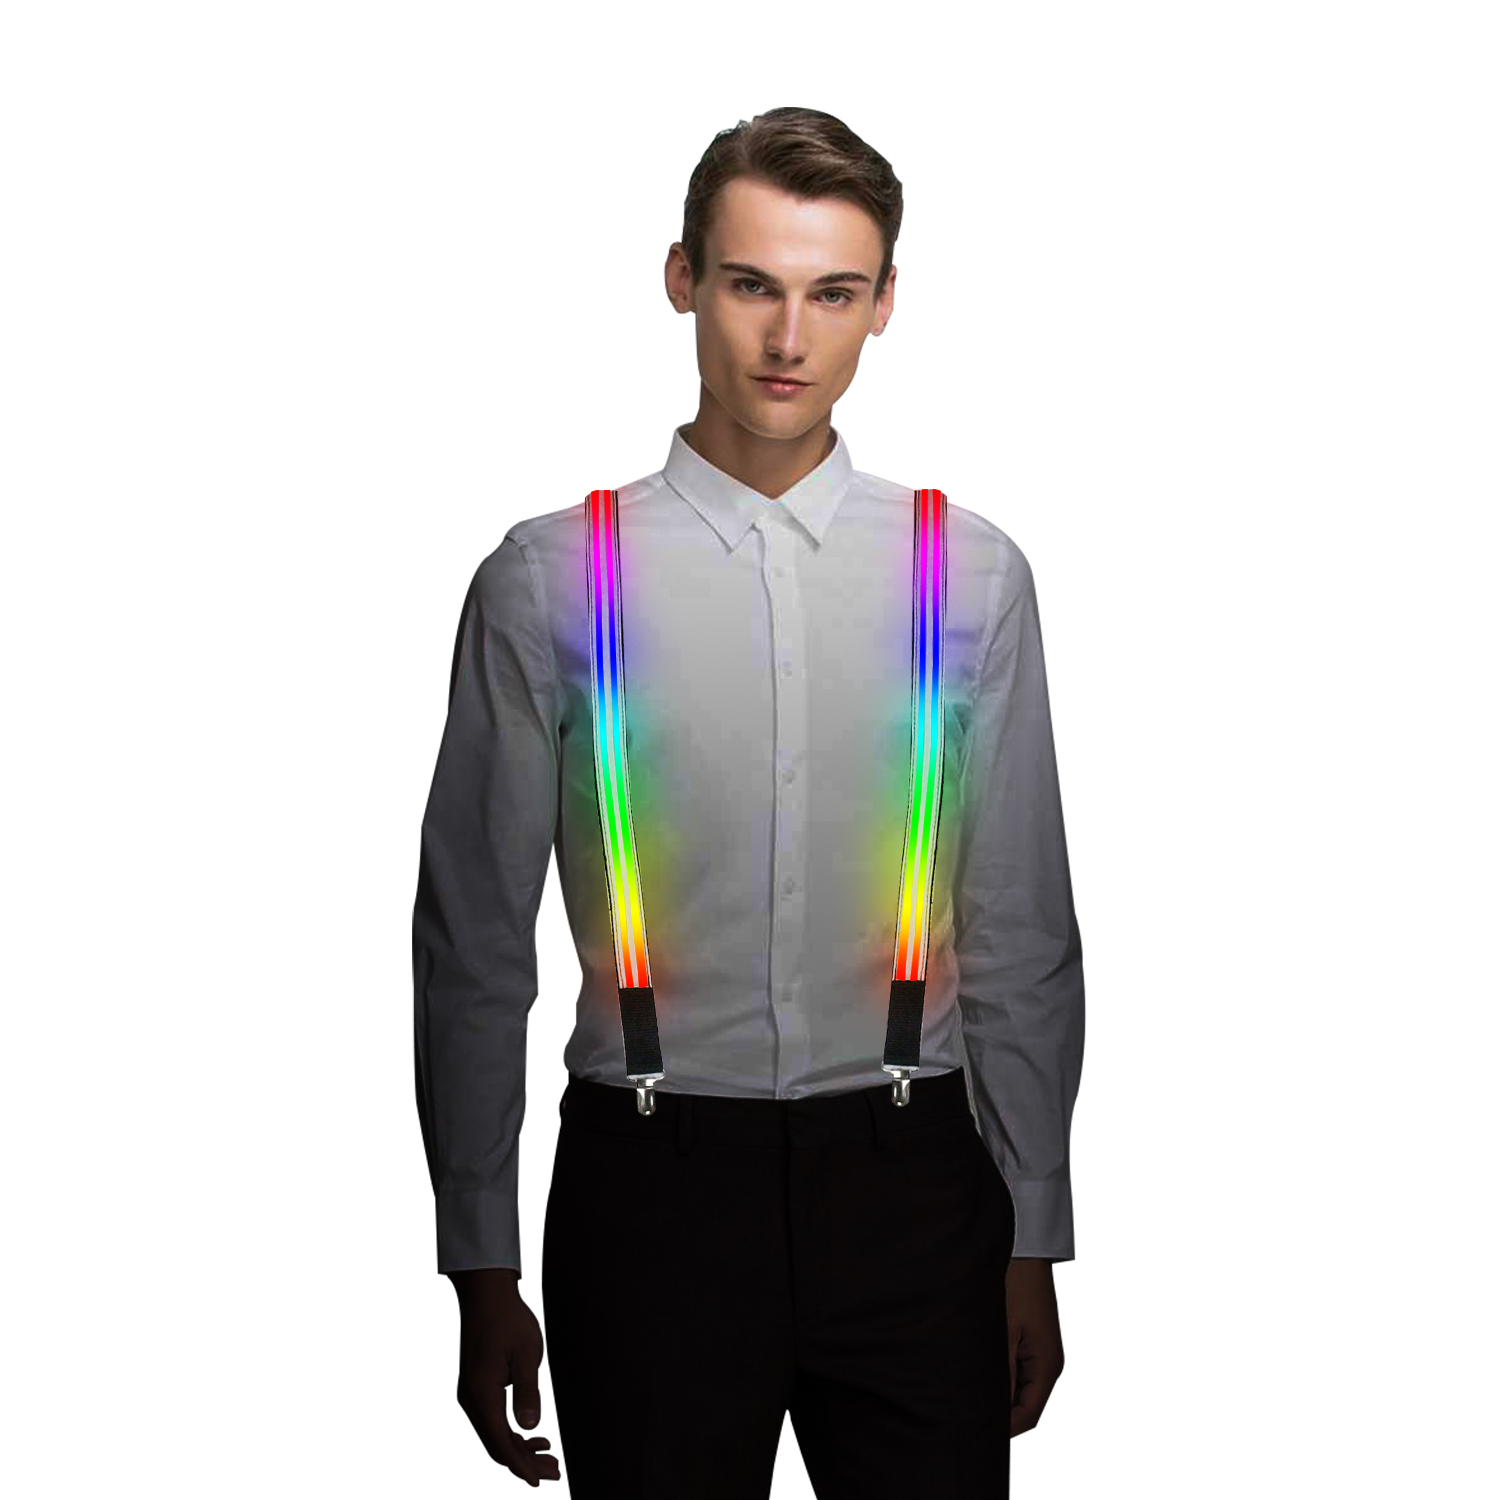 BLUE LED Light Up Glowing Suspenders Men Suit Costume USB Rechargeable Party